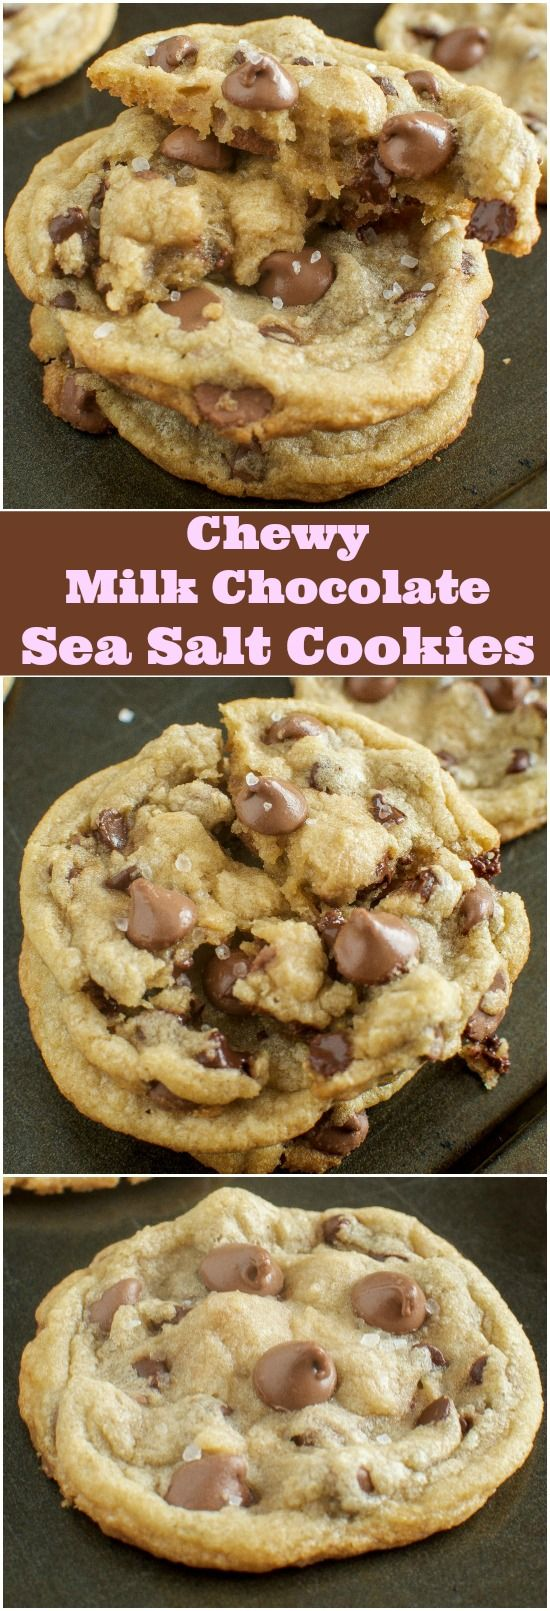 Chewy Milk Chocolate Sea Salt Cookies | Sea Salt, Milk and Salts